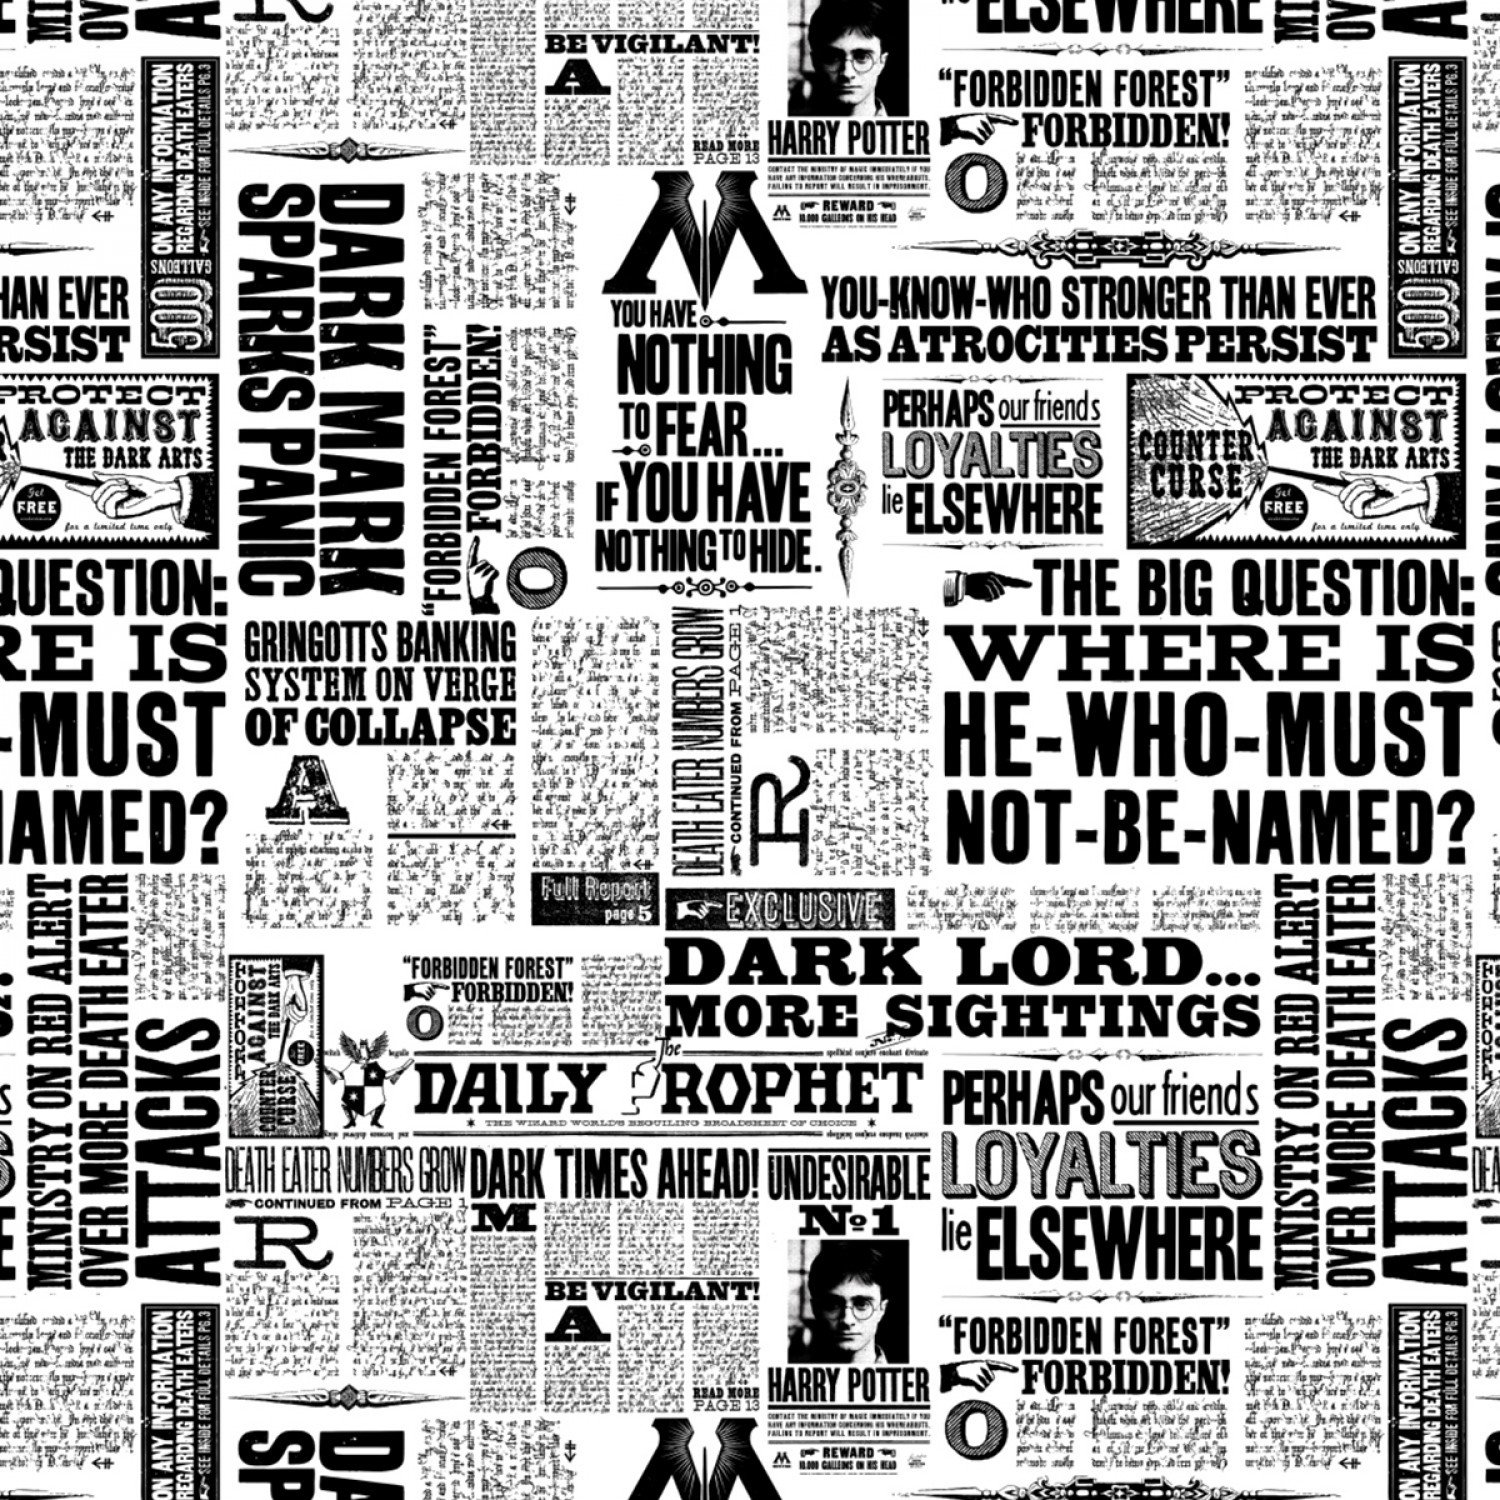 23800120-1 Harry Potter Newsprint white black